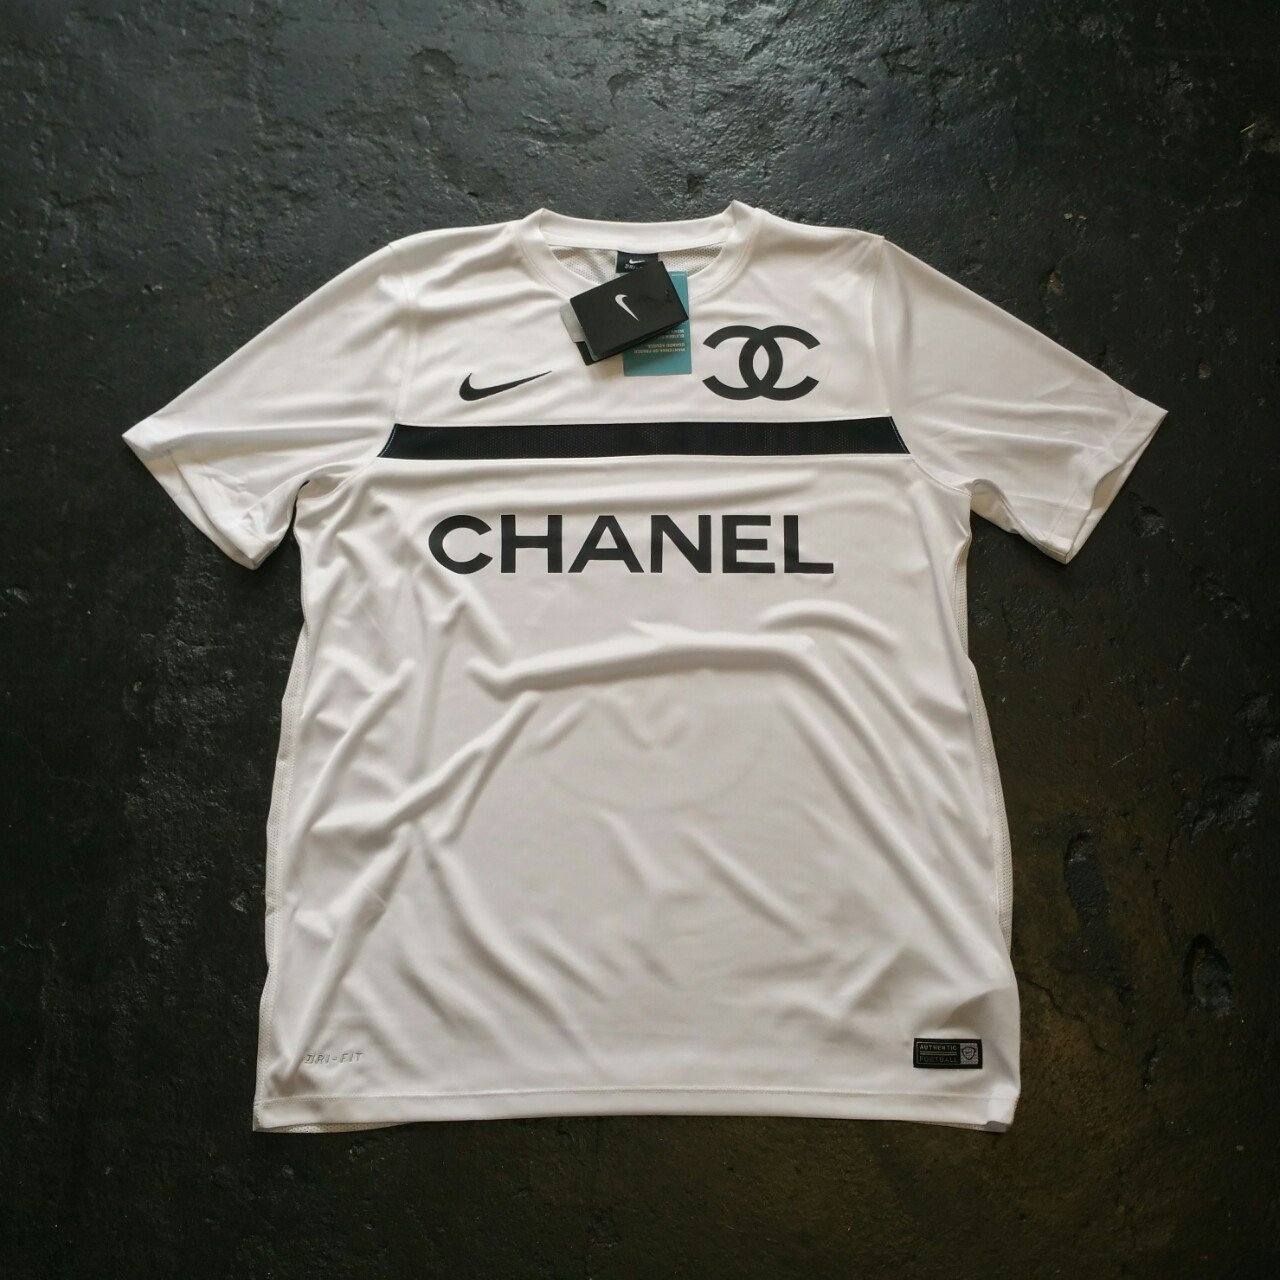 d92c152d1 Nike chanel football top jersey brand new with tags is depop jpg 1280x1280 Nike  chanel